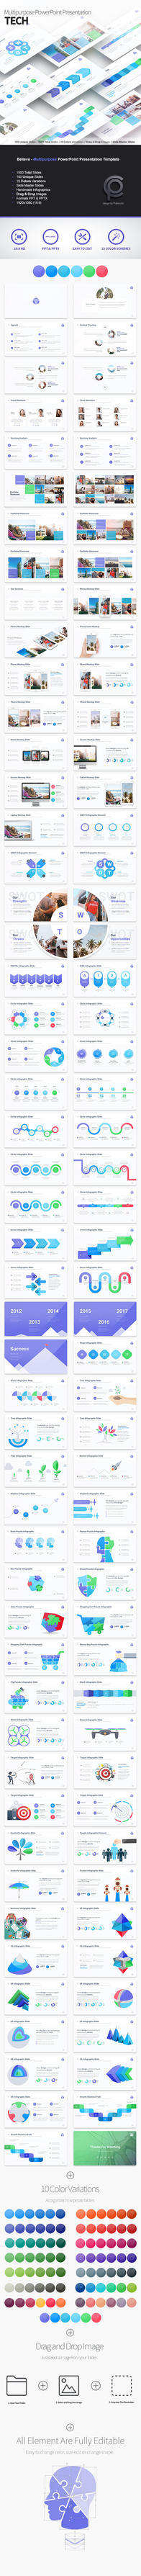 Tech - Multipurpose PowerPoint Presentation by Pulsecolor